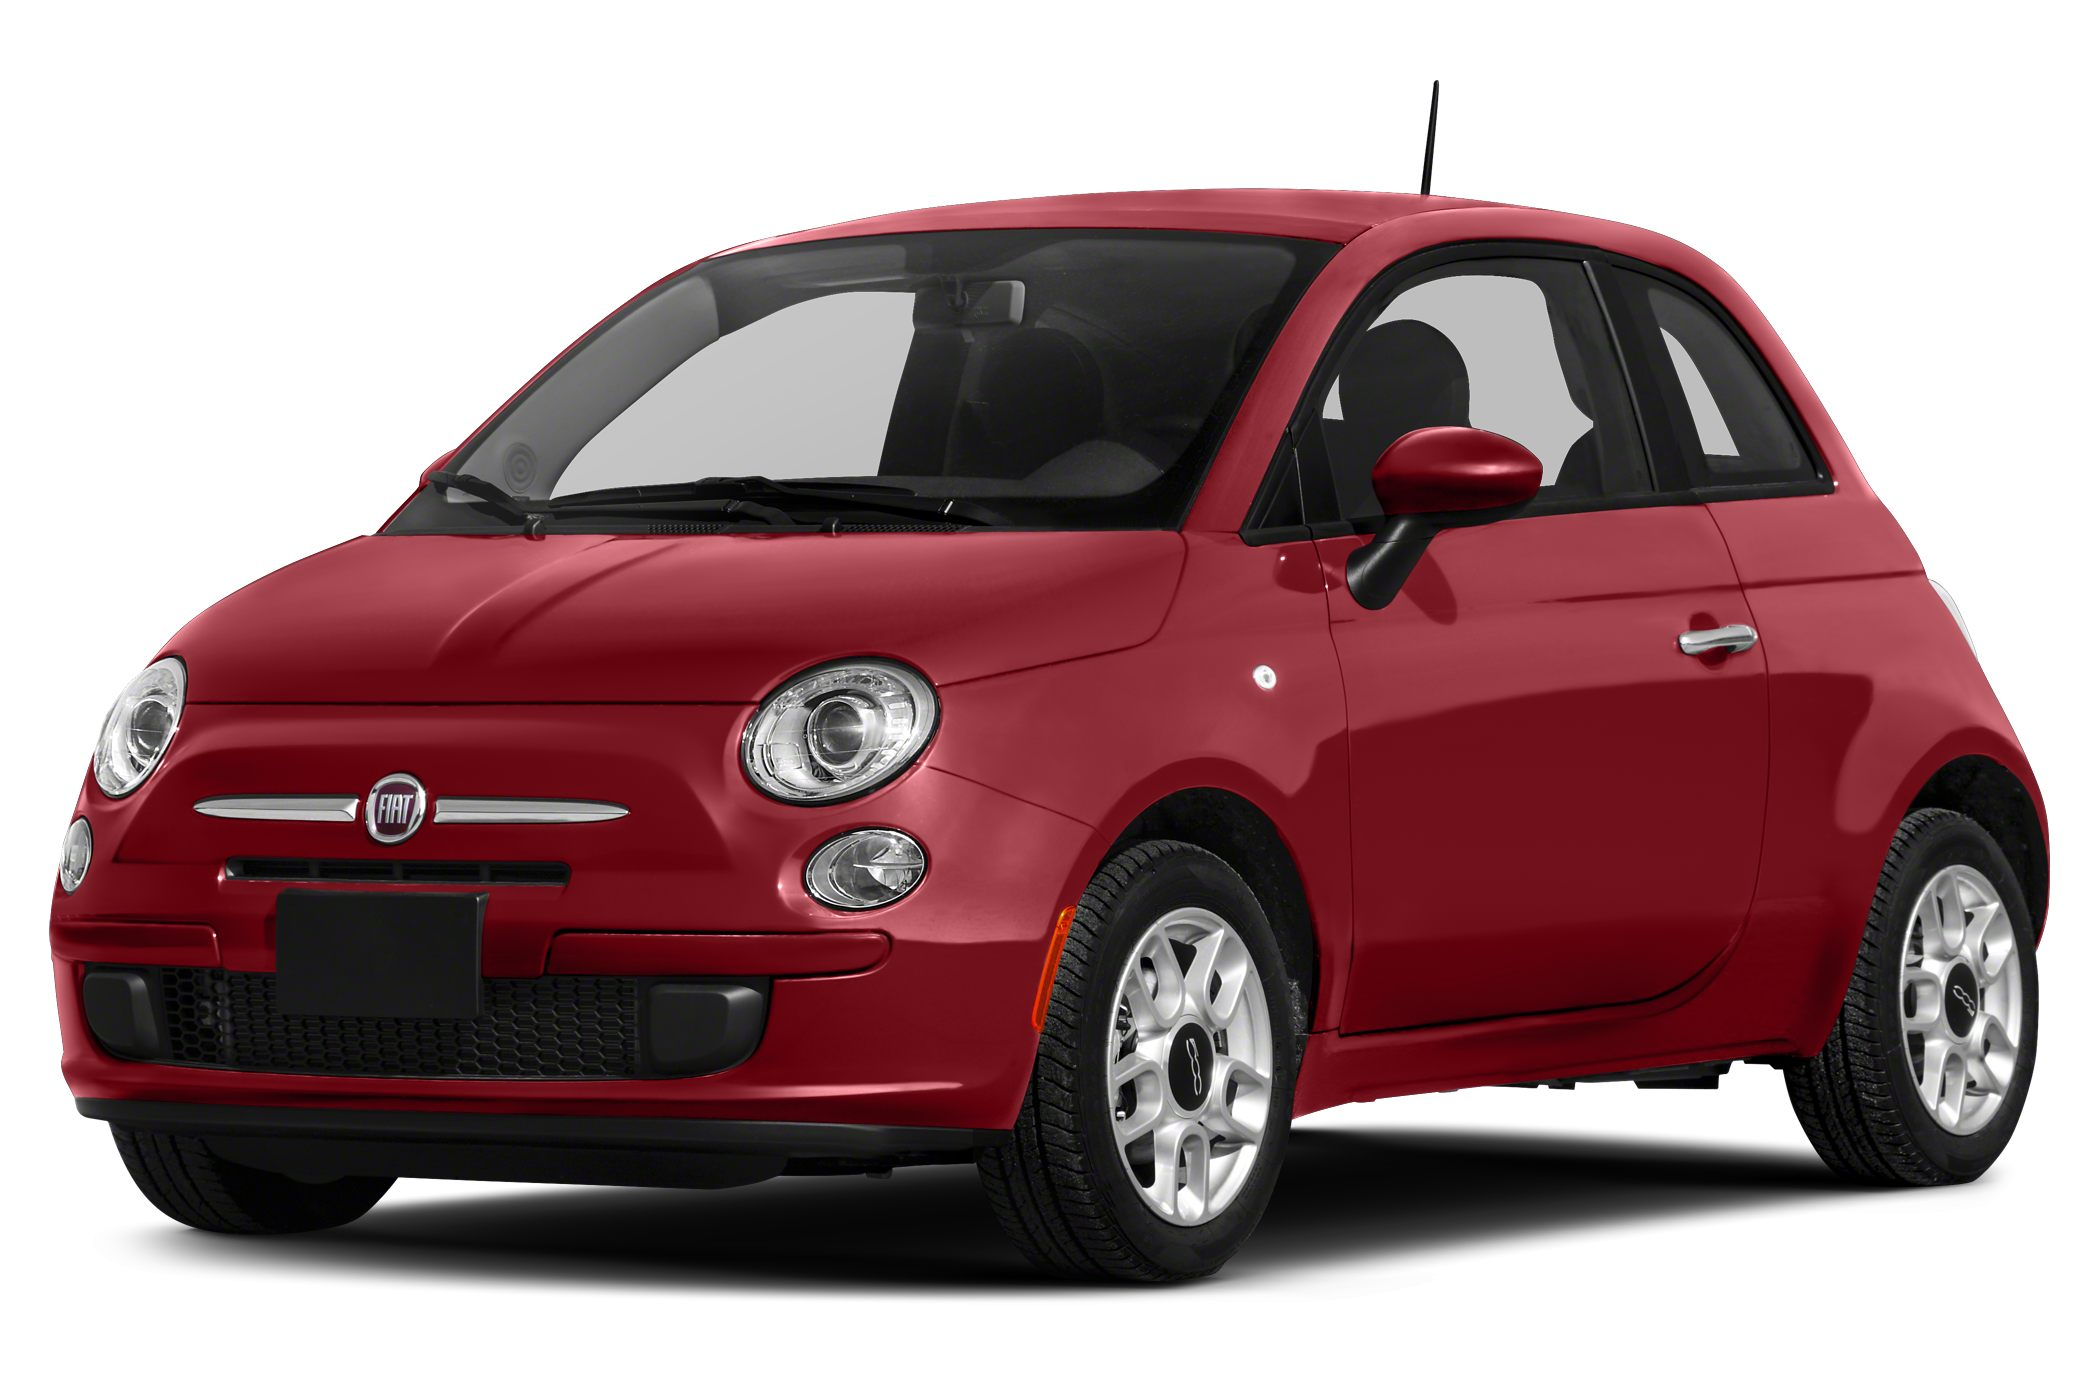 2015 FIAT 500 Sport Vehicle Options ABS Brakes Fog Lights Side Head Curtain Airbag Air Conditionin